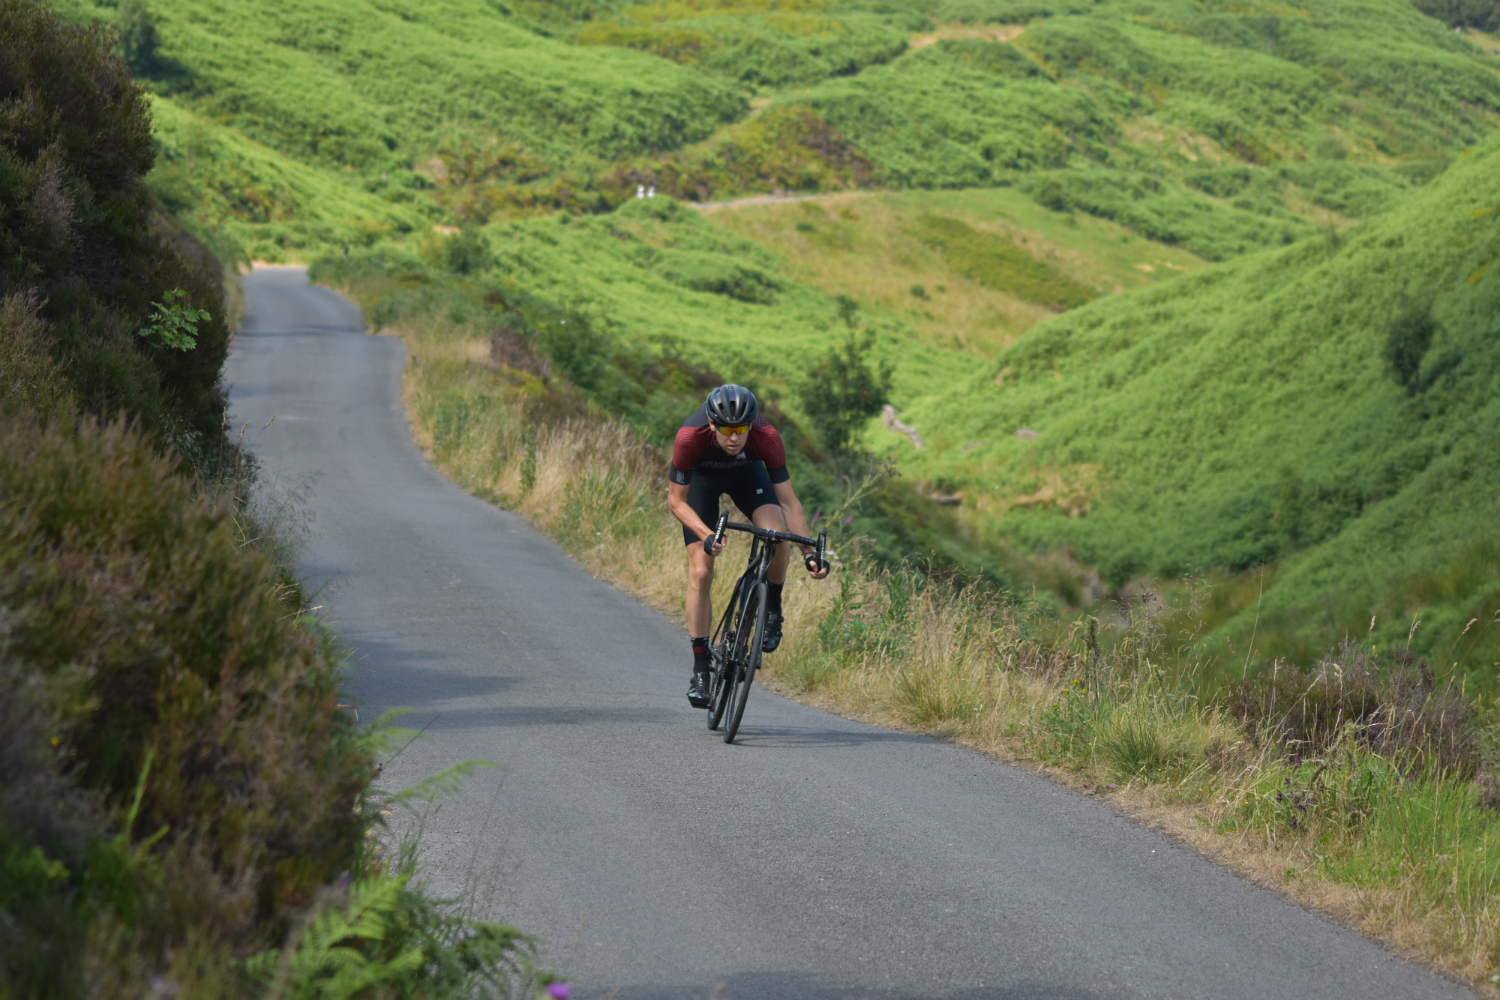 a cyclist sprinting uphill in the drops